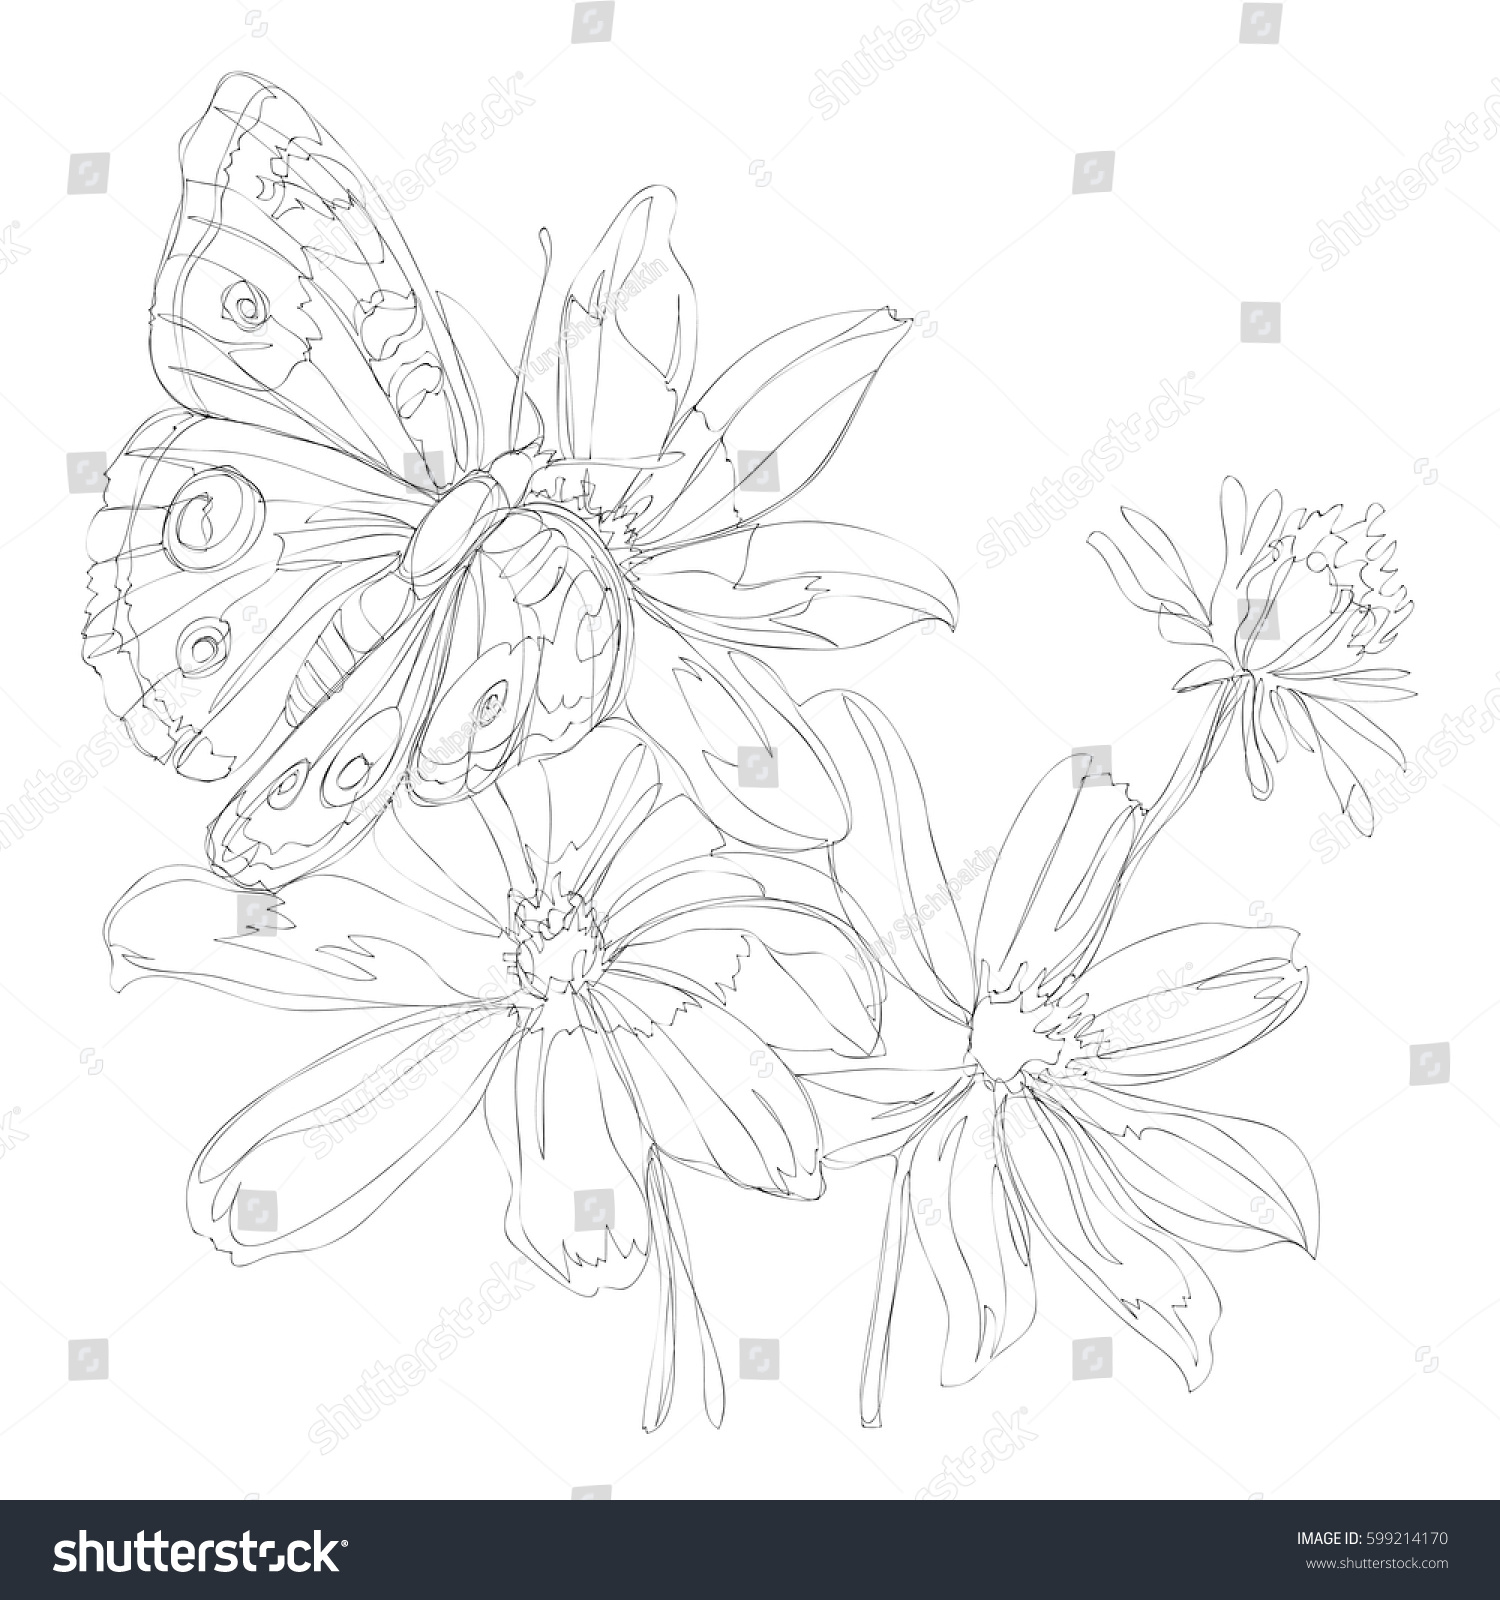 Continuous Line Drawing Flowers : Beautiful flowers line art continuous stock vector